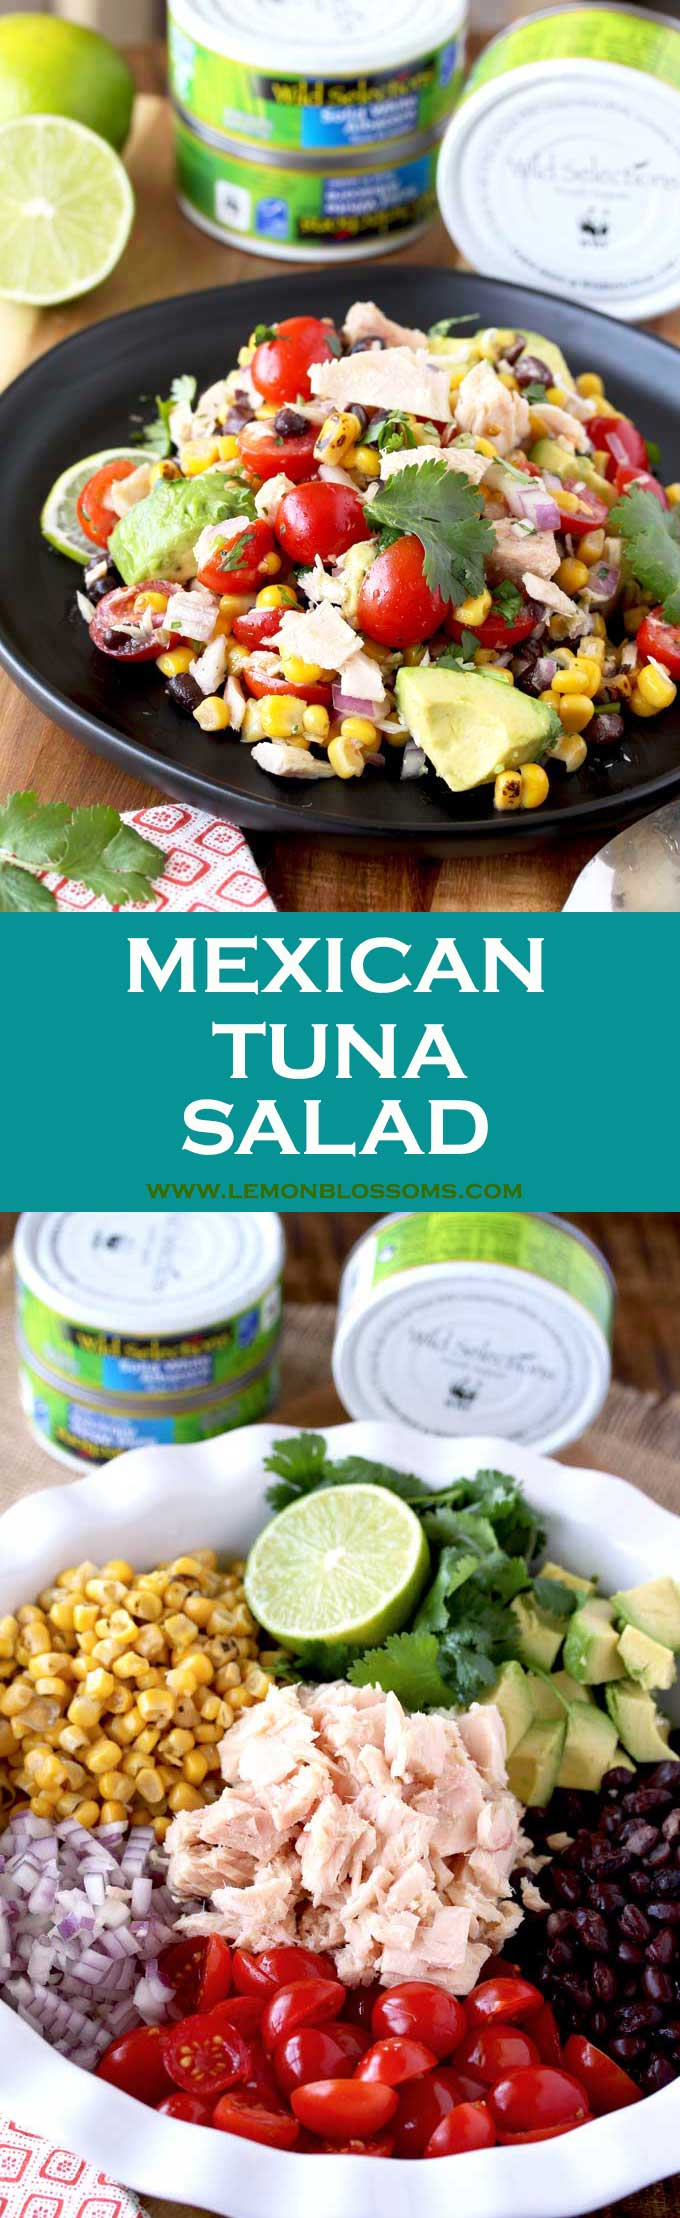 This Mexican Tuna Salad is delicious and very easy to make. Packed with tuna, roasted corn, tomatoes, avocados, black beans, onions and tossed in a light and tasty lime dressing. This protein-packed, healthy and easy tuna salad is one everyone will enjoy! #sponsored #WildSelections #SelectSustainable #tunasalad #salads #tuna